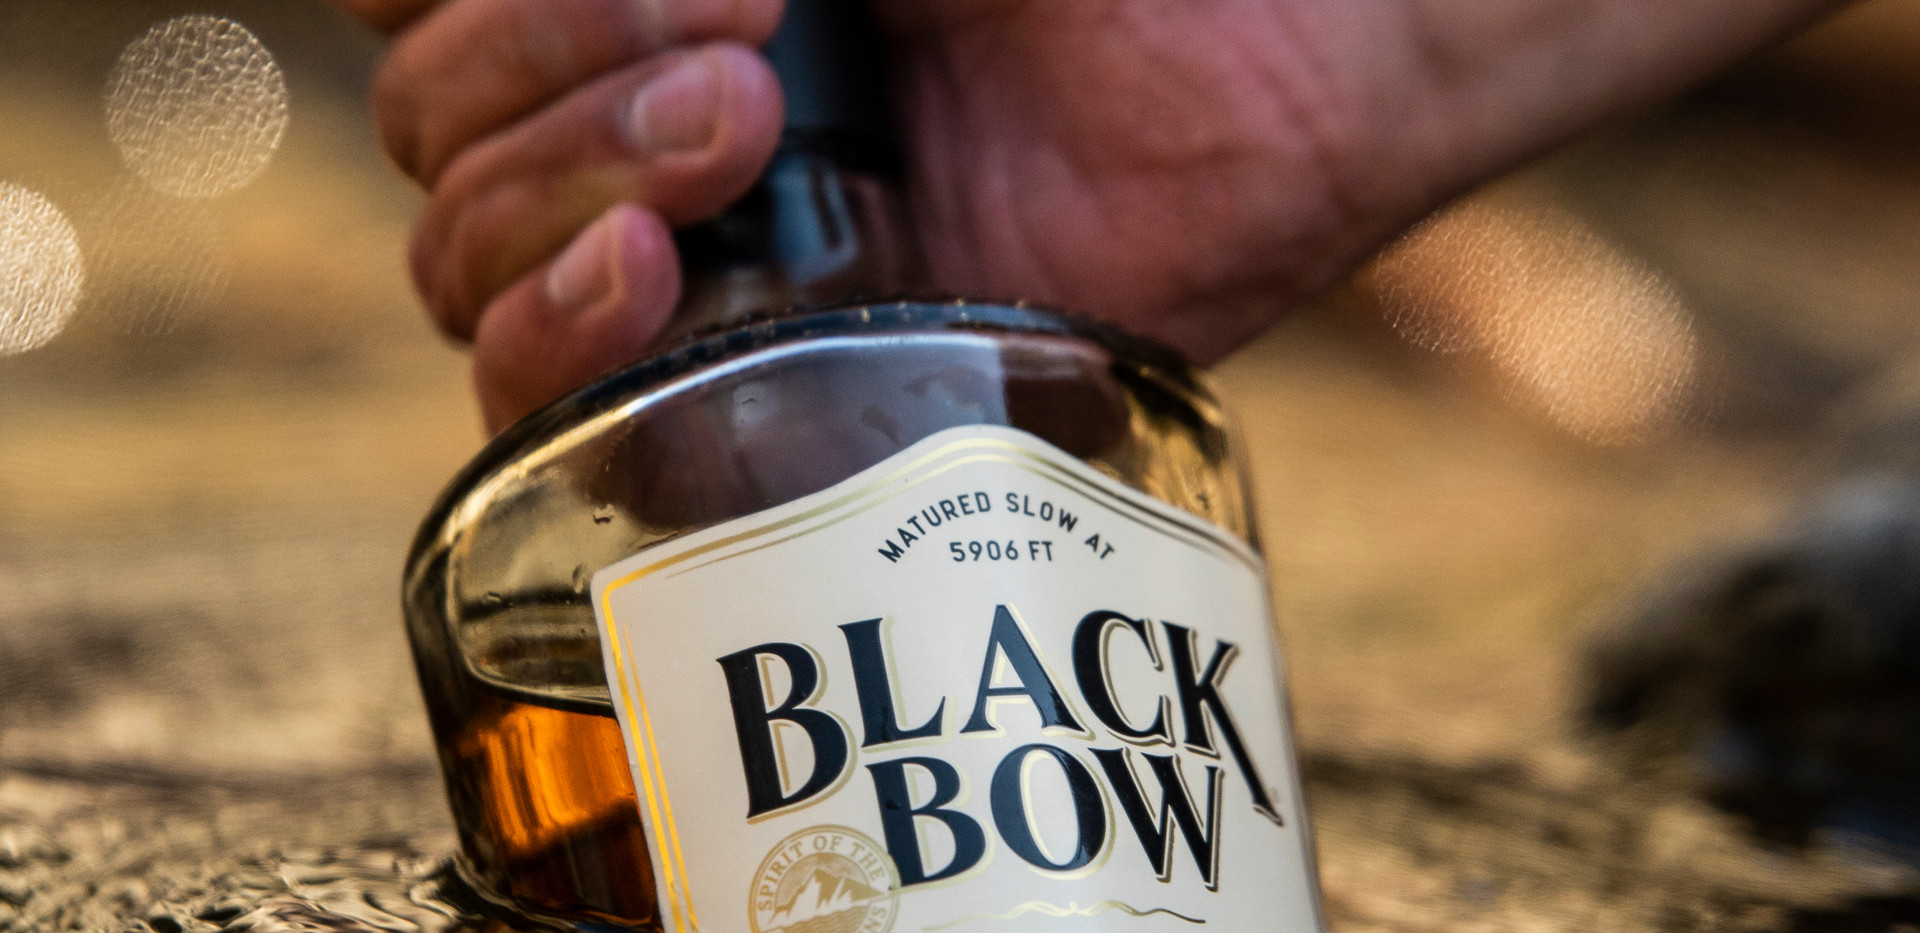 Black Bow Whiskey.jpg